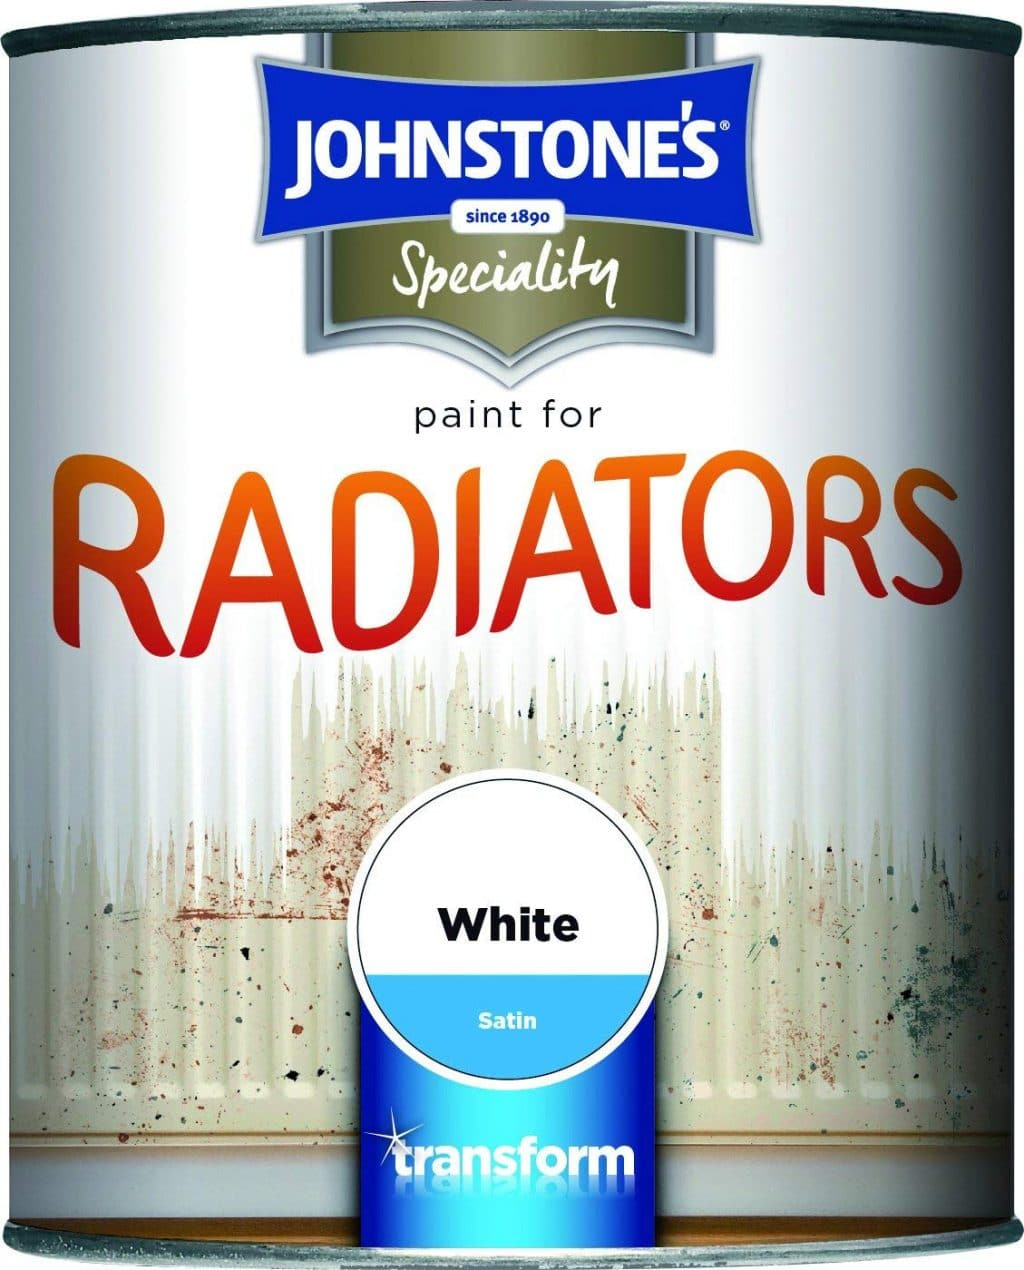 johnstone's paint for radiators